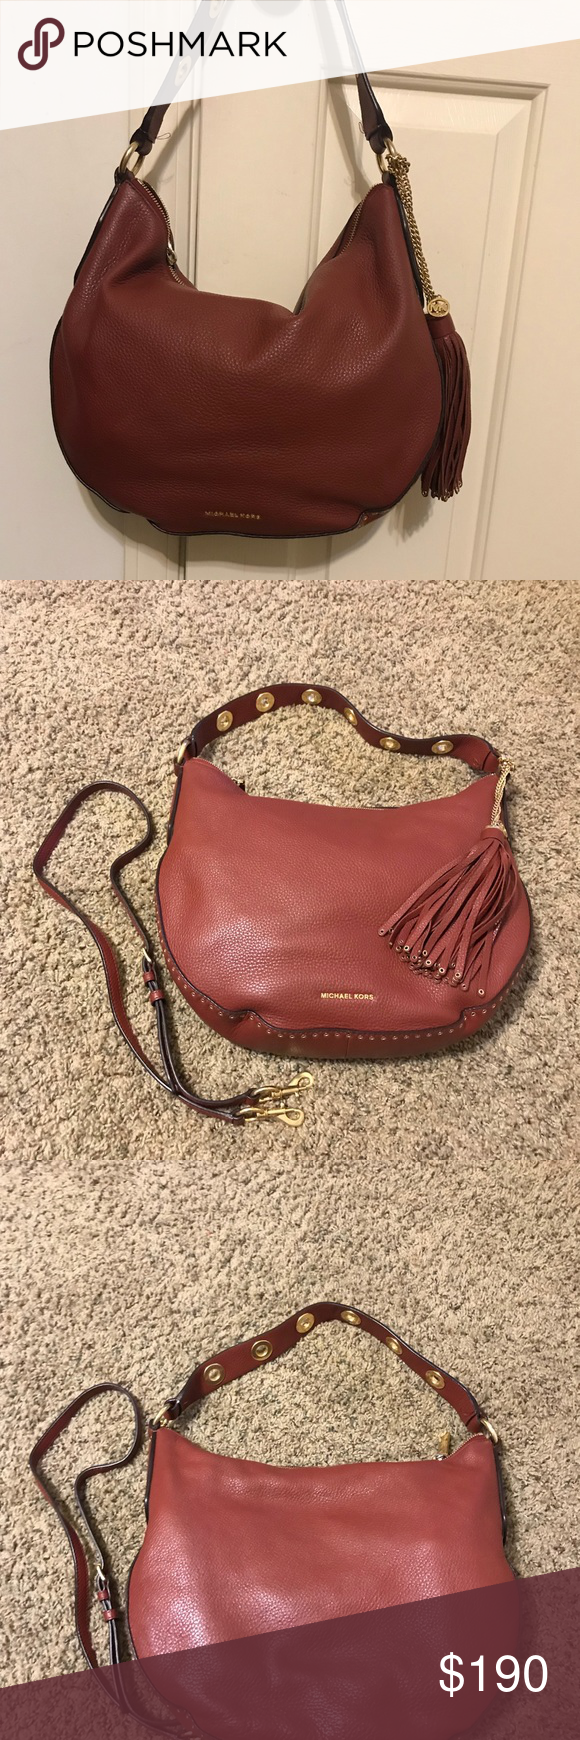 ed6350dd1088 Michael Kors Brooklyn Large Convertible Hobo Very good used condition.  Color is MK Brick Inside